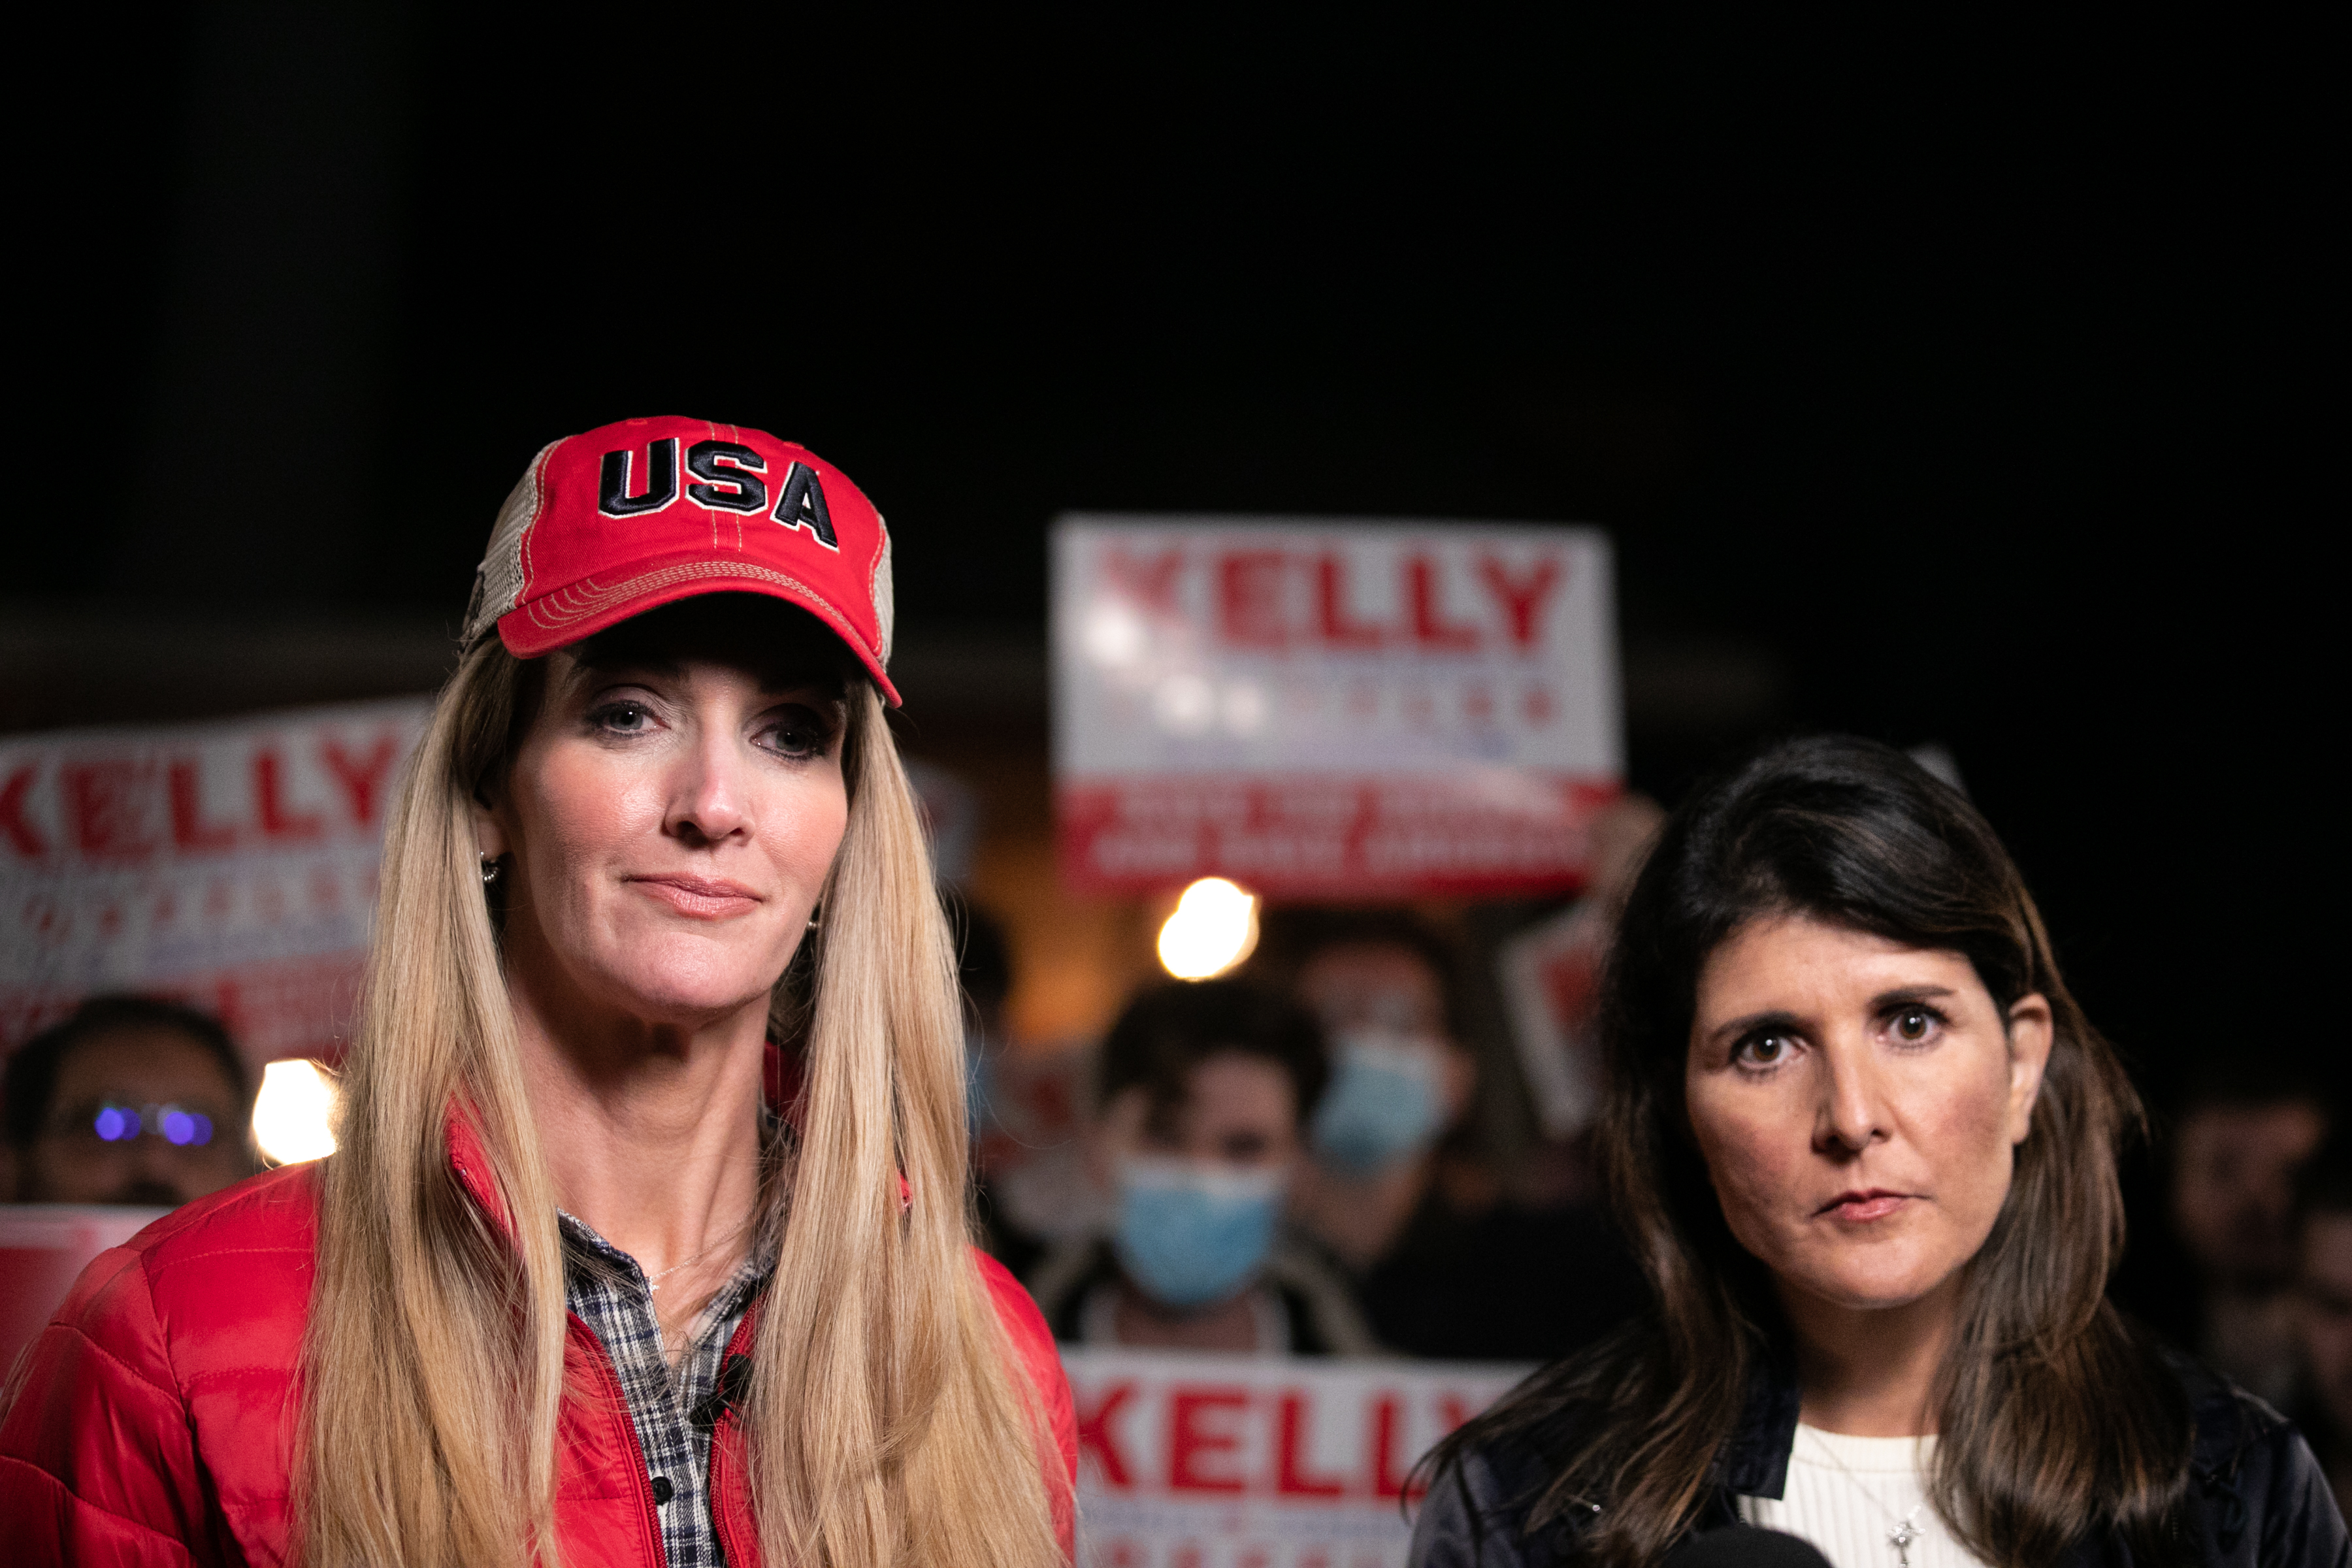 Georgia Republican Senate candidate Kelly Loeffler and former U.N. Ambassador Nikki Haley take questions from the media during a rally on December 20, 2020 in Cumming, Georgia. The Senate Firewall campaign event comes ahead of a crucial runoff election for Sen. David Perdue and Loeffler on January 5th that will determine what party controls the United States Senate.